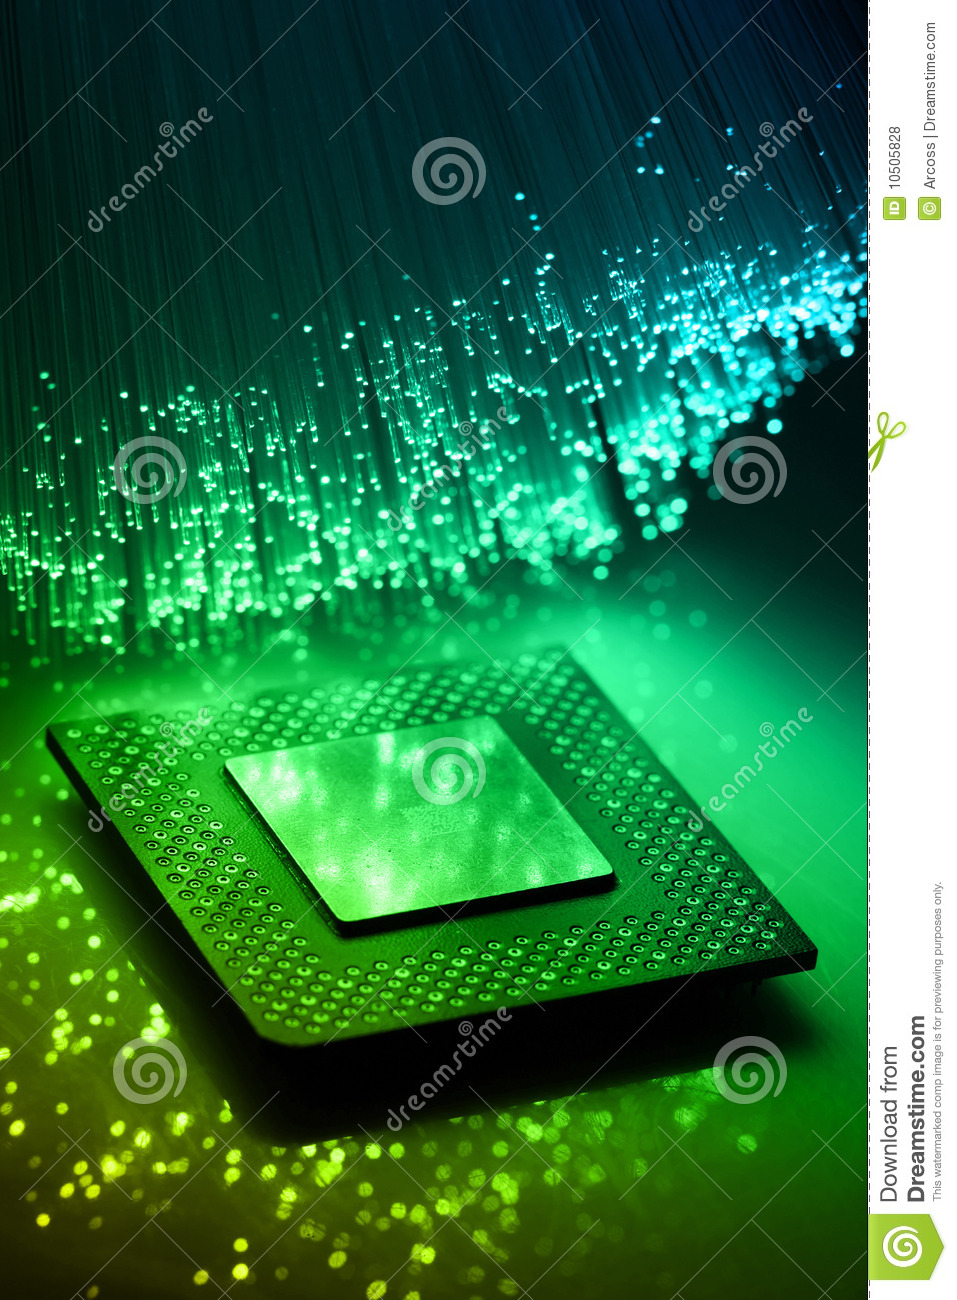 High Tech Technology Background Royalty Free Stock Photos